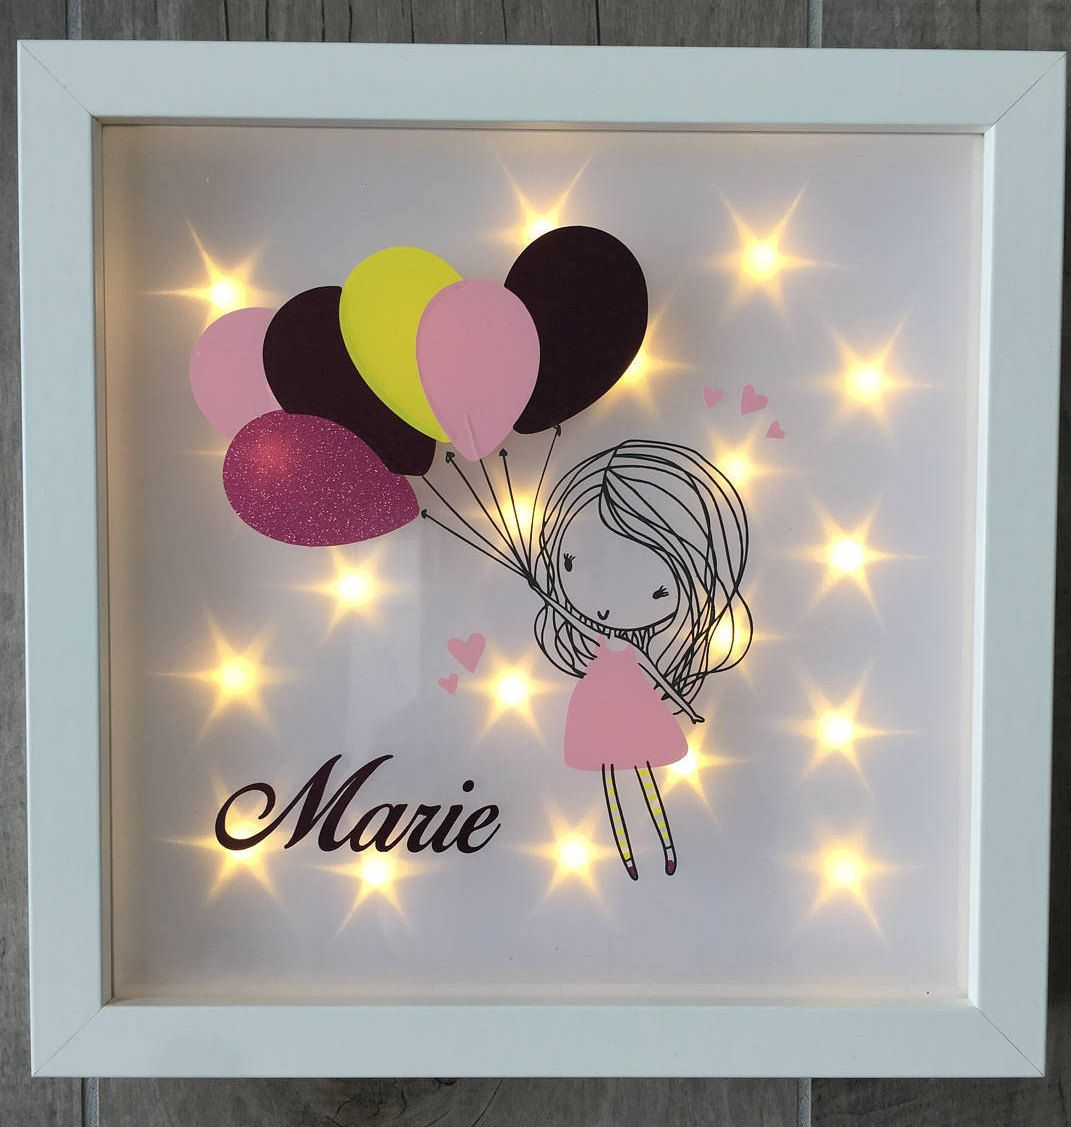 Illuminated picture frame with air balloon girl and nightclub